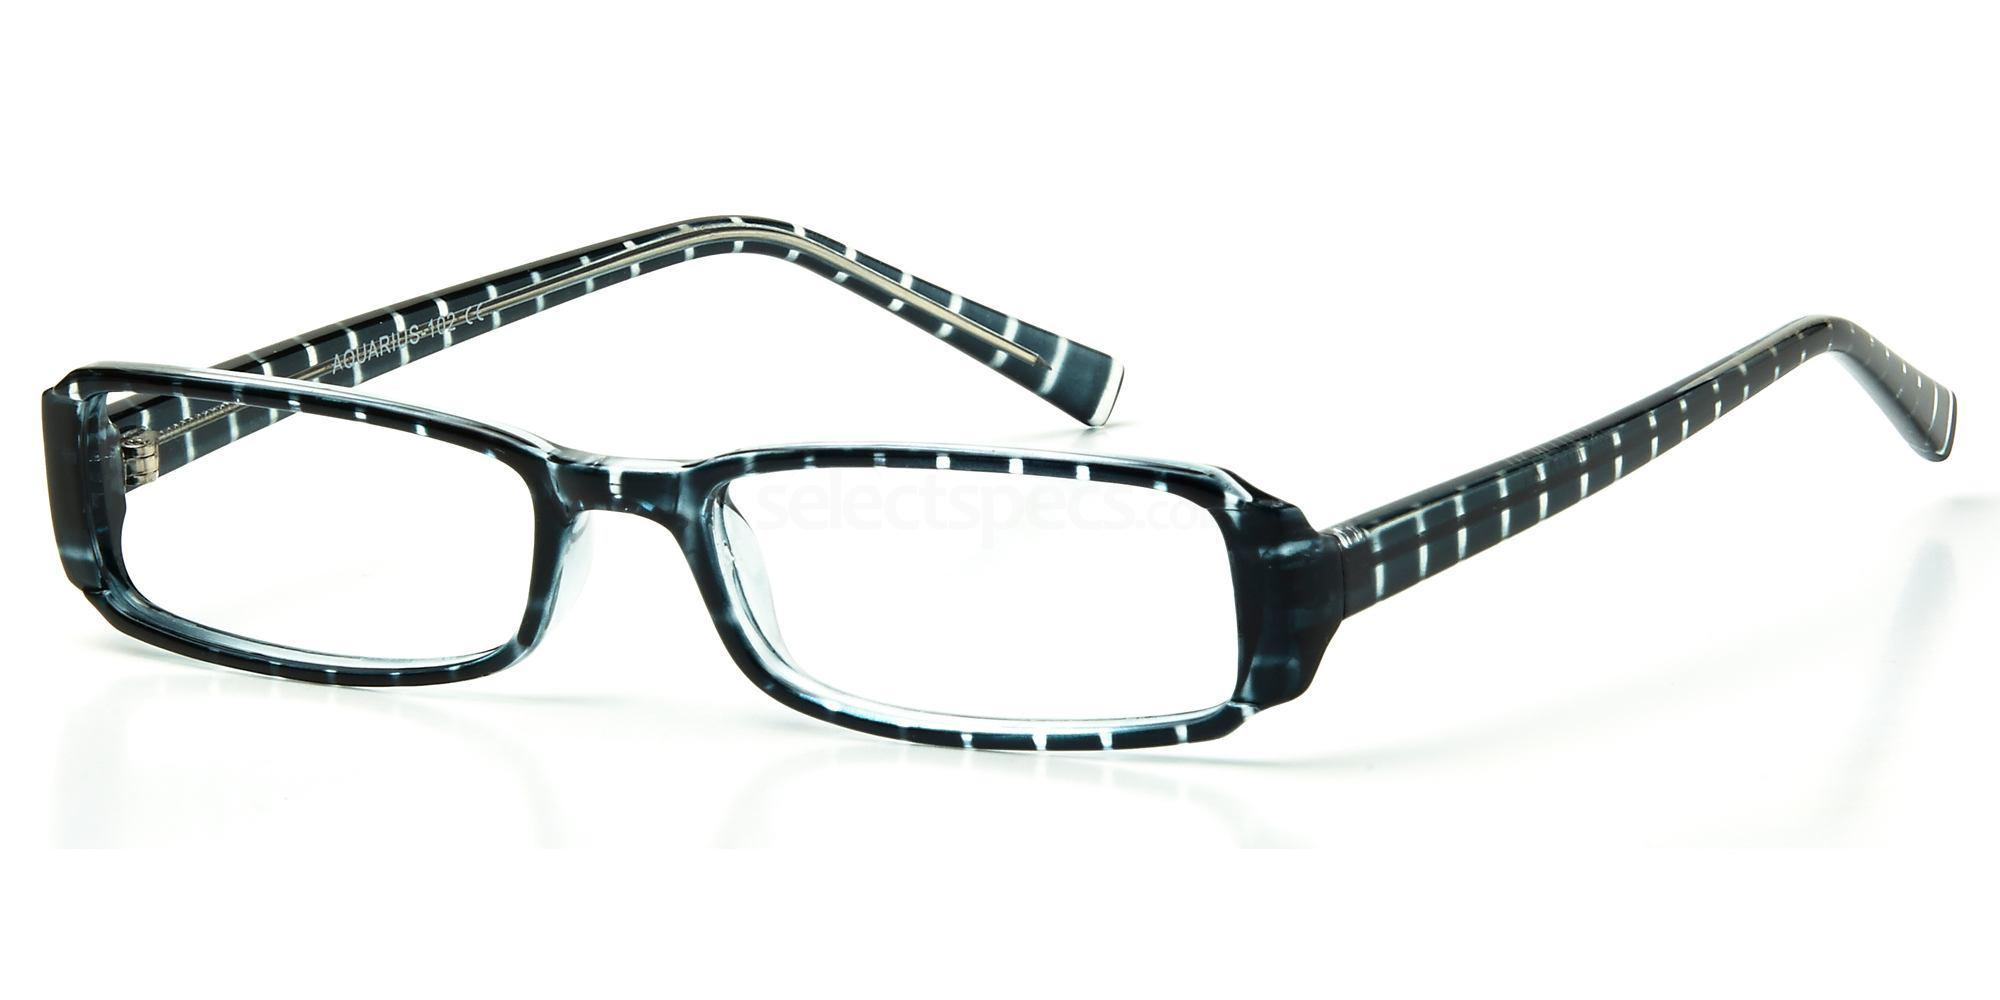 C1 AQ102 Glasses, Aquarius